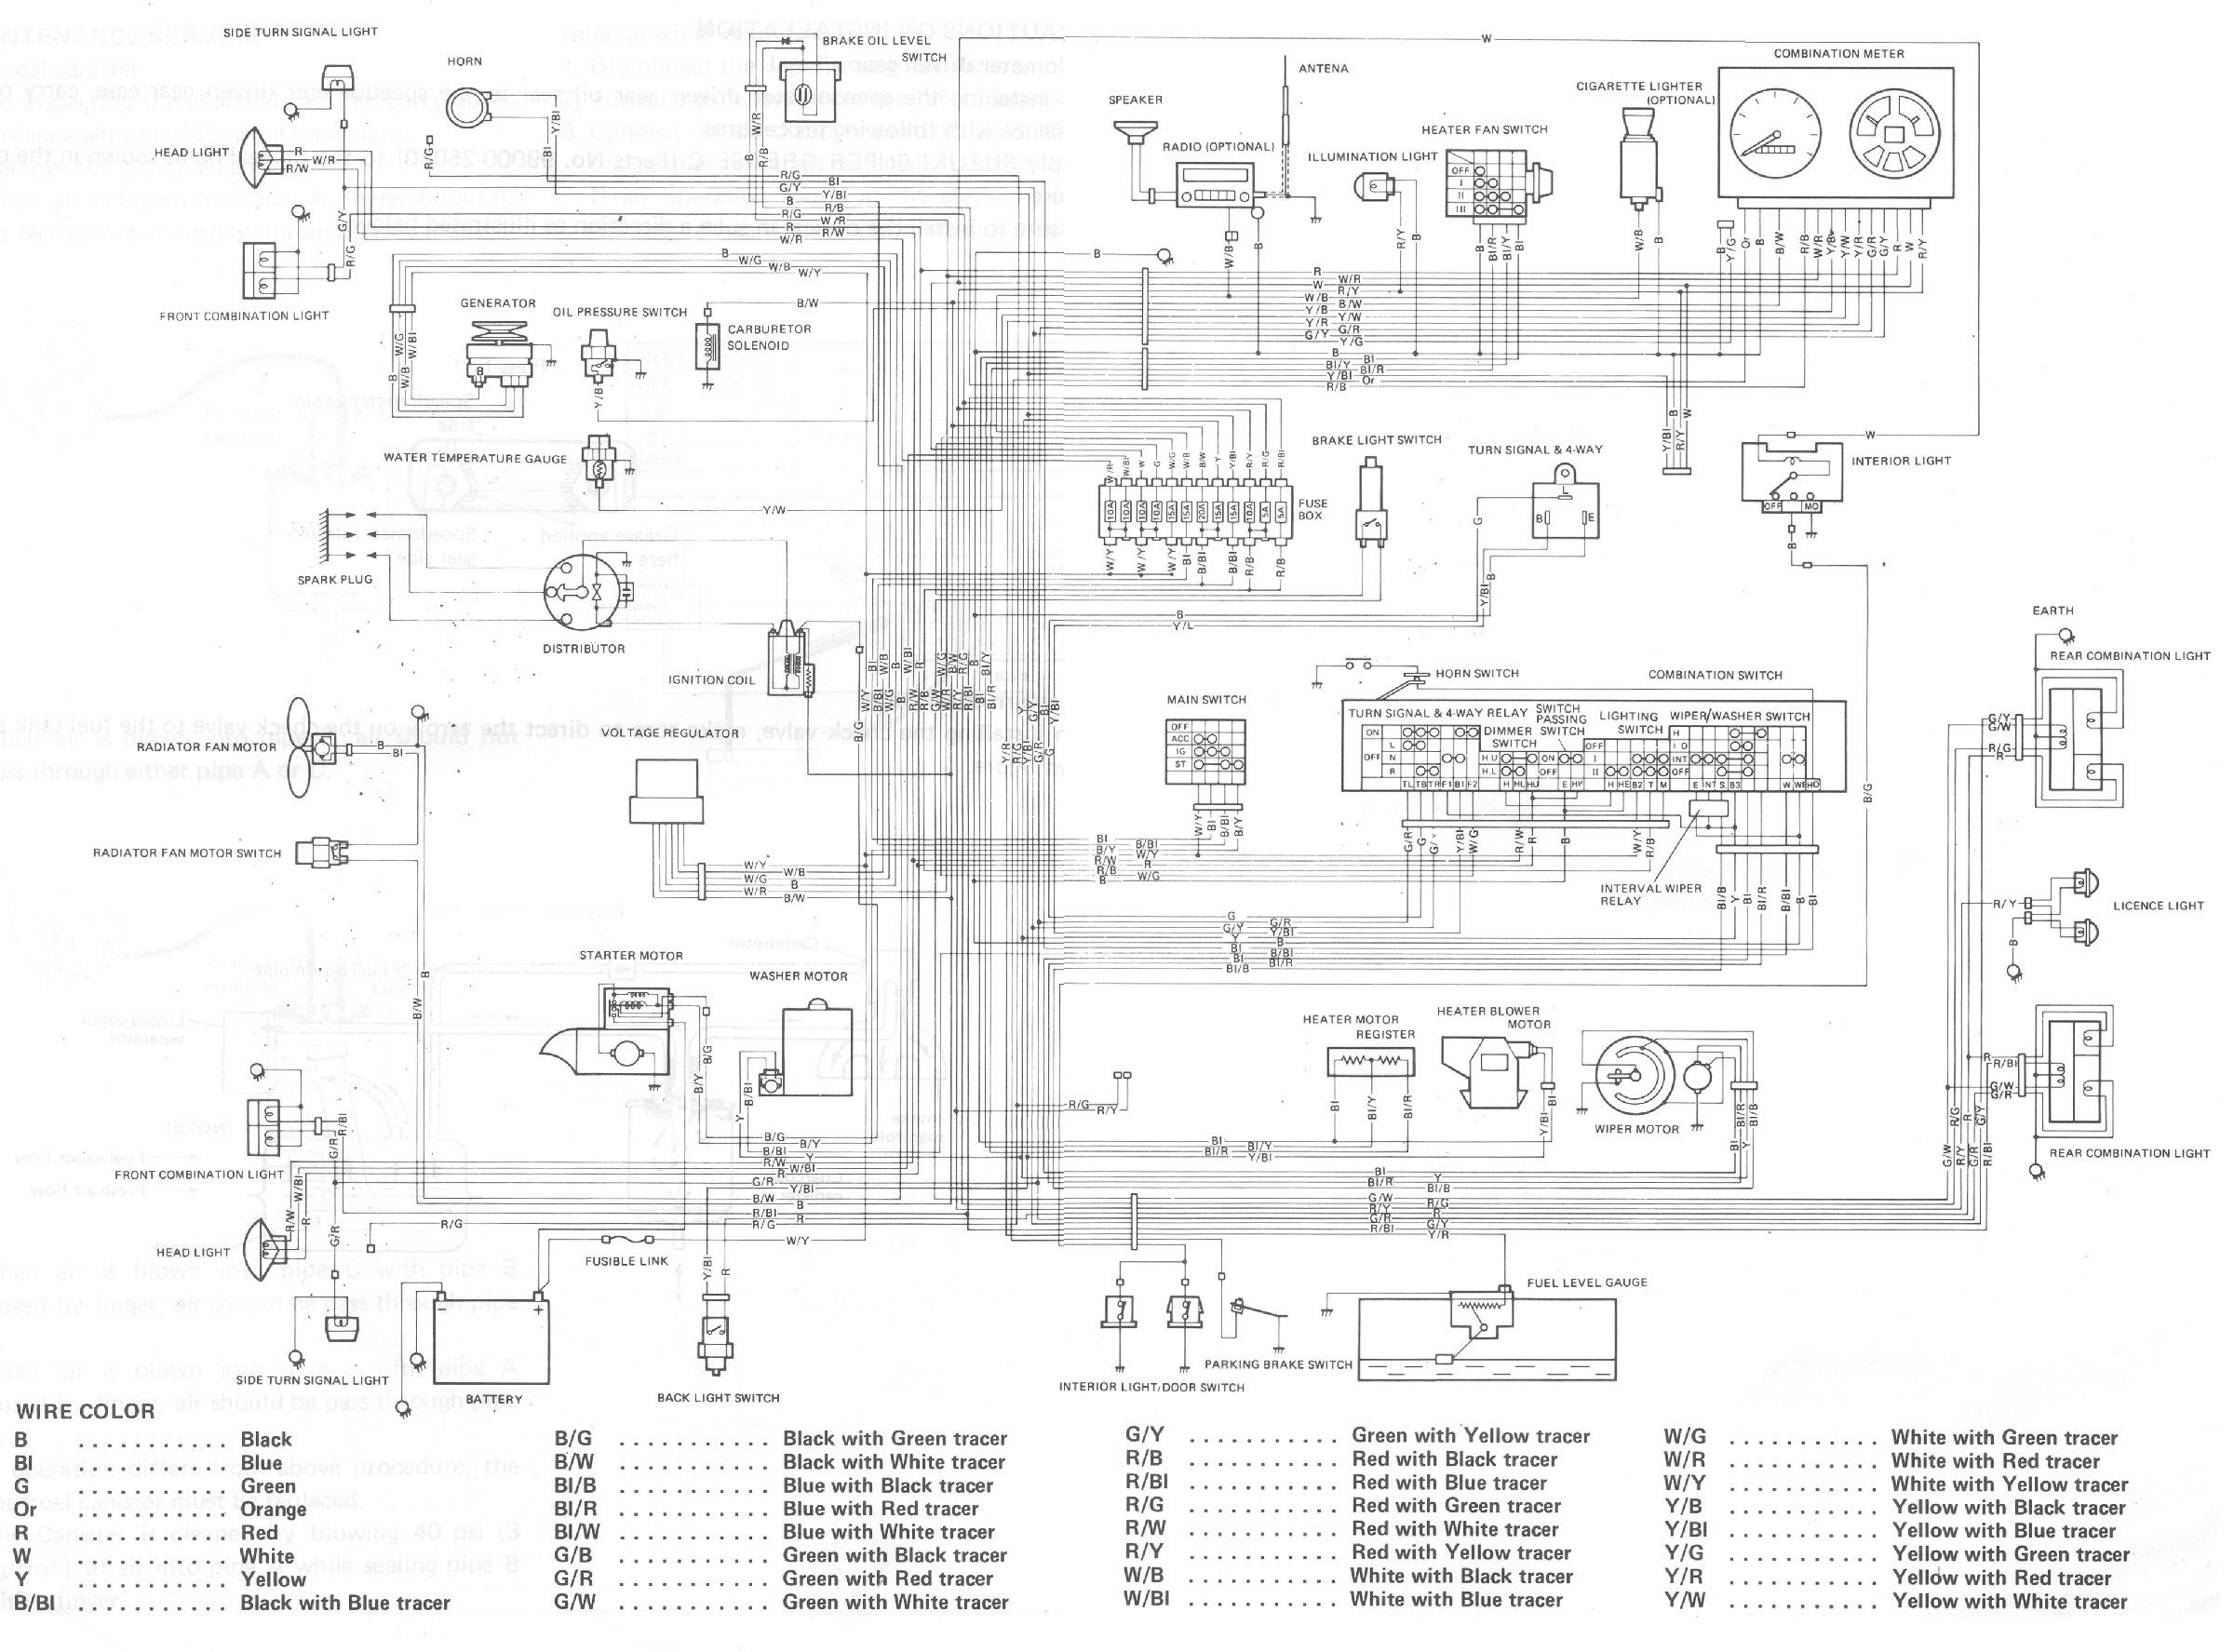 Roketa Wiring Diagram Manual New Buggynews Buggy Forum E280a2 View Topic  800cc Huaihai Engine Coil And Of 6 | Diagram, House wiring, BuggyPinterest